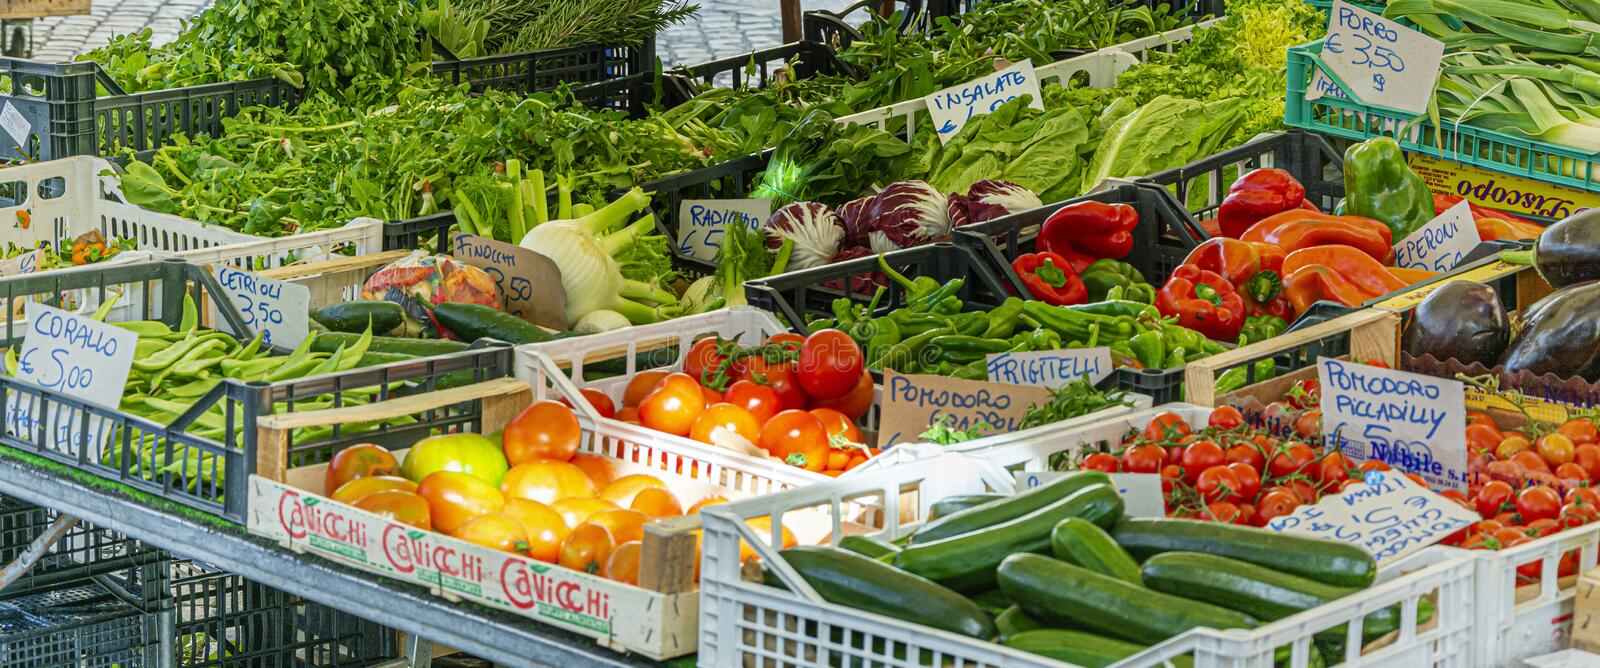 Mixed vegetables, including tomatoes, peppers and courgettes, on sale in a stand in the historic Campo de Fiori street market in. Rome, Italy, February 2017 royalty free stock image